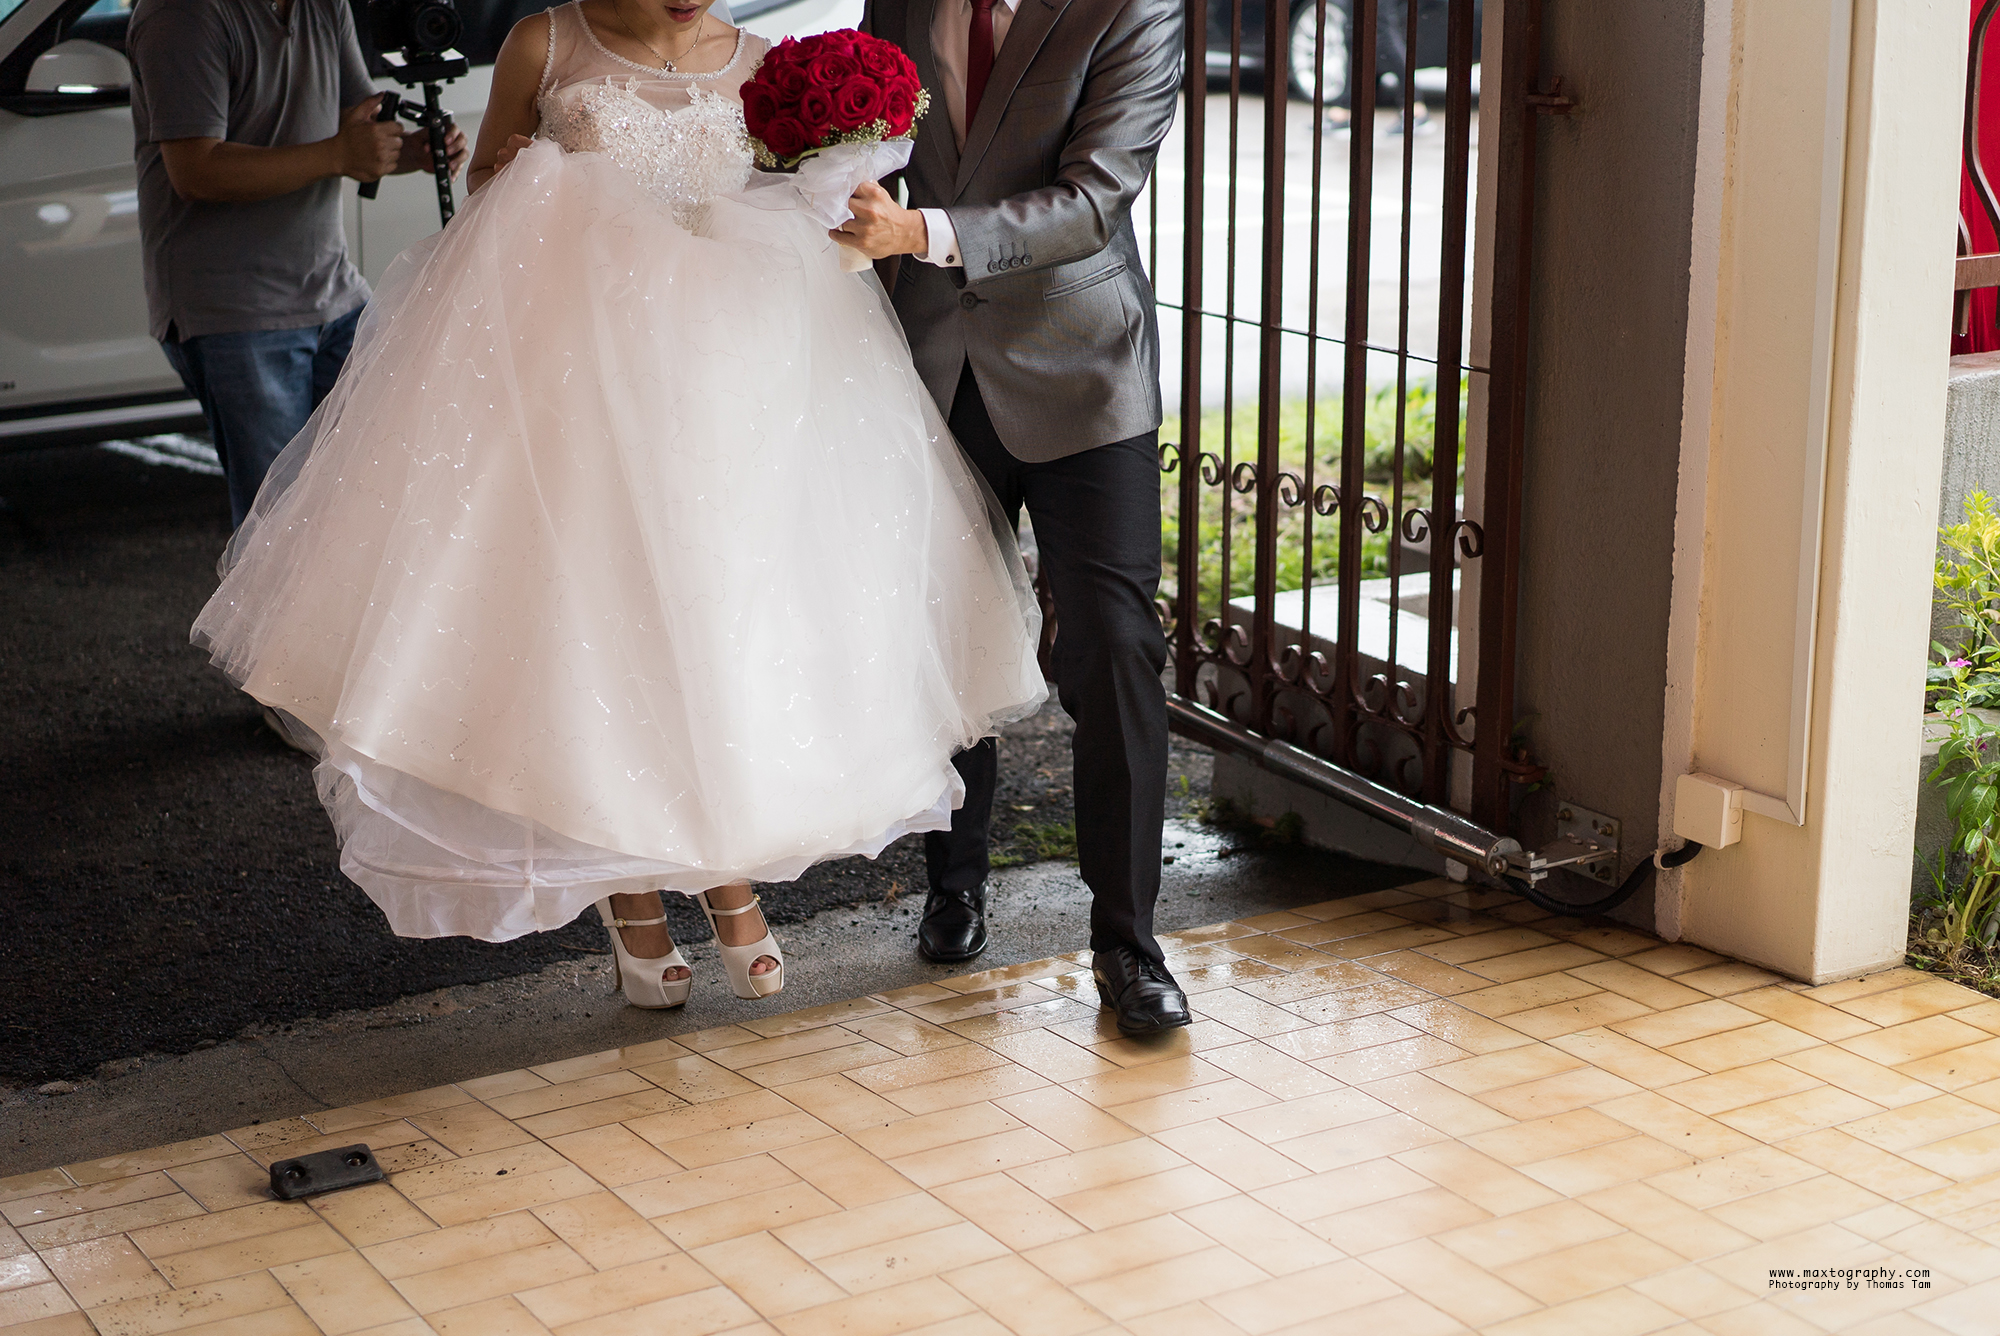 Bride and groom entering house gate